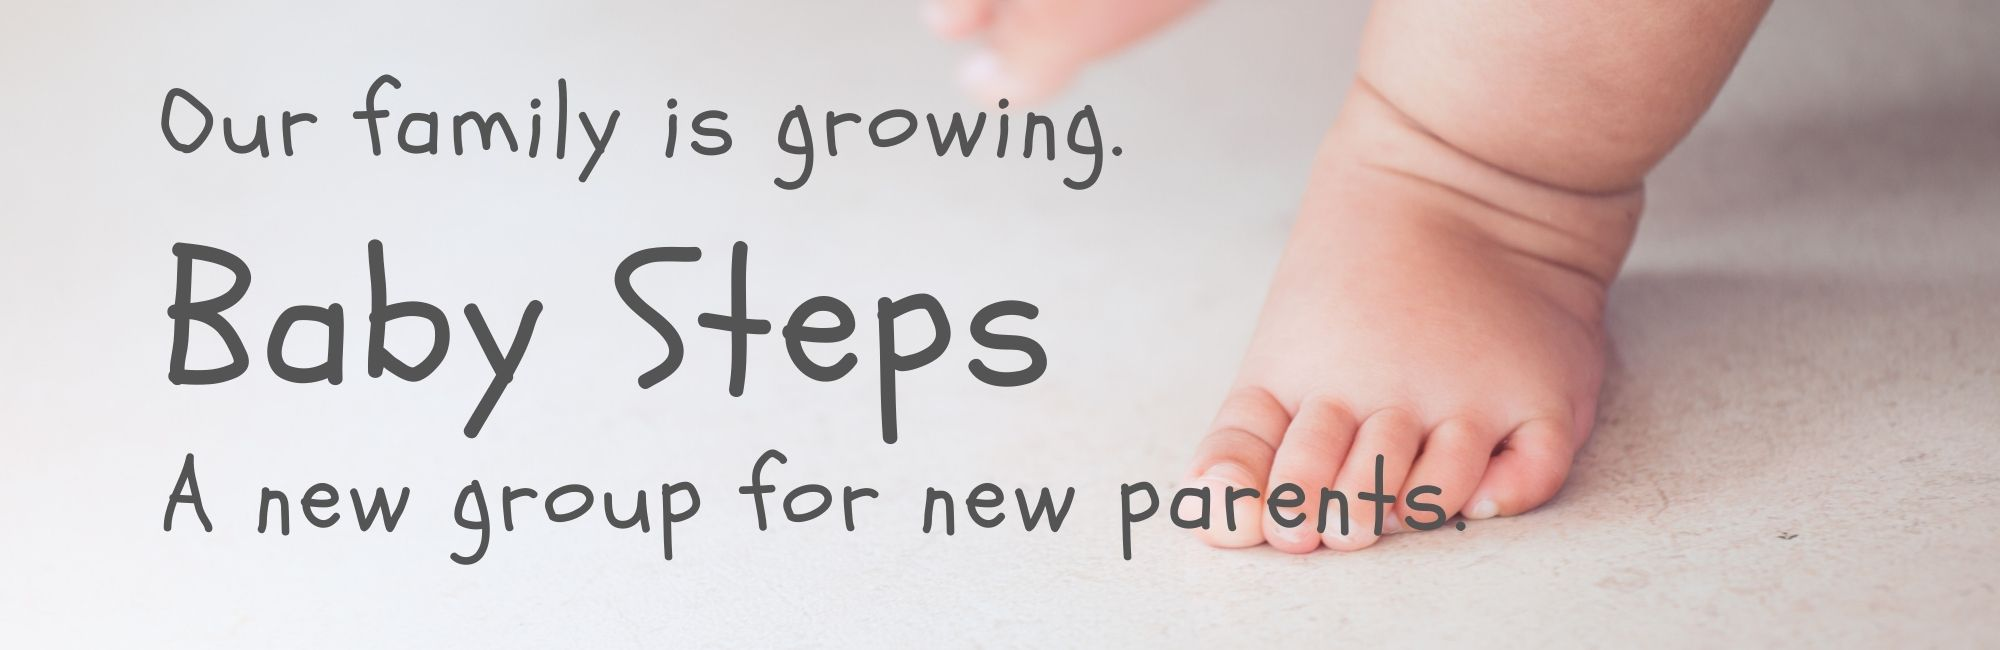 BABY STEPS banner